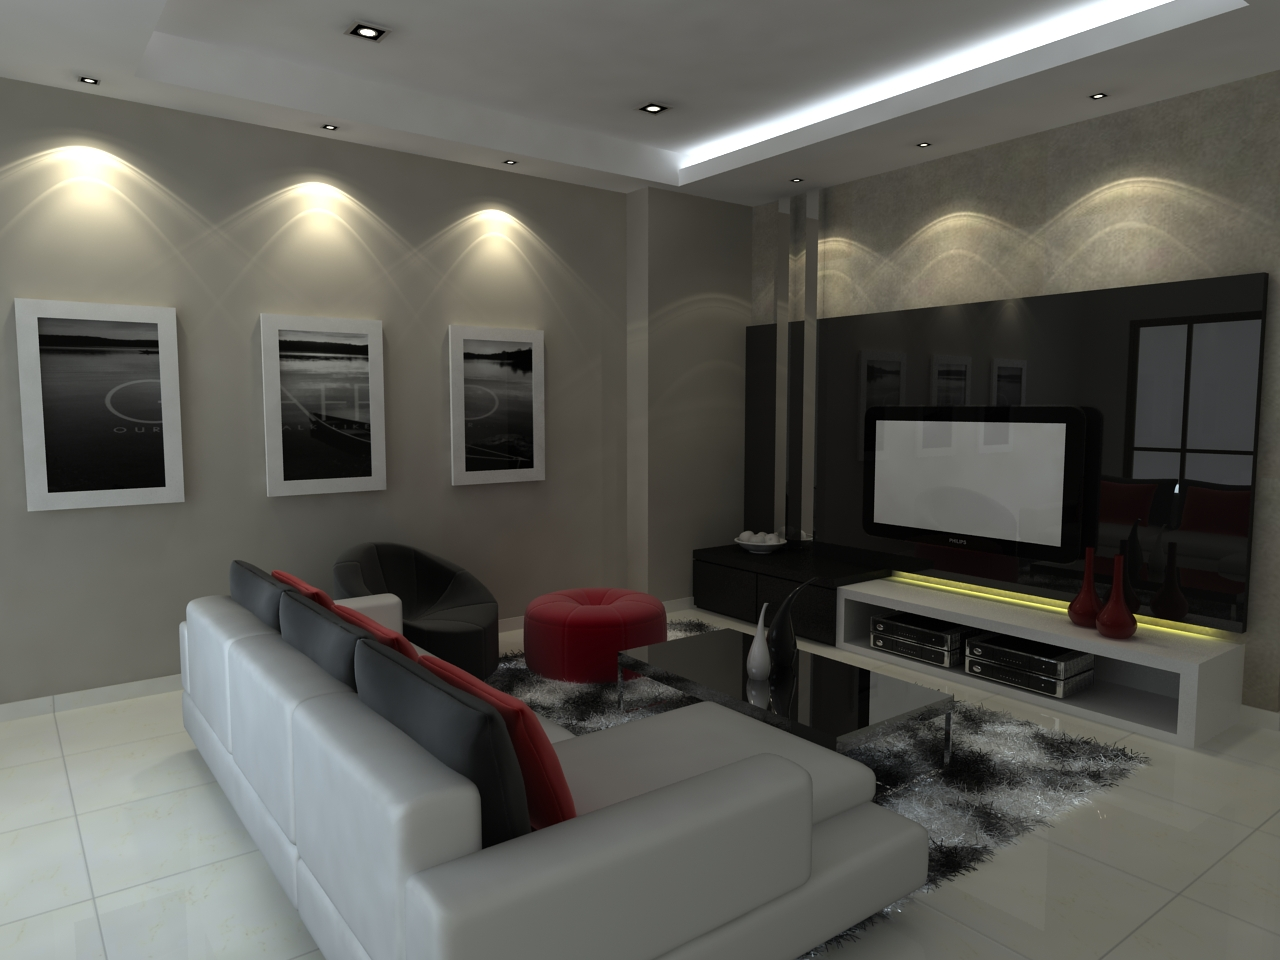 Home Interior Designs | Interior Design Malaysia l Expert Interior ...